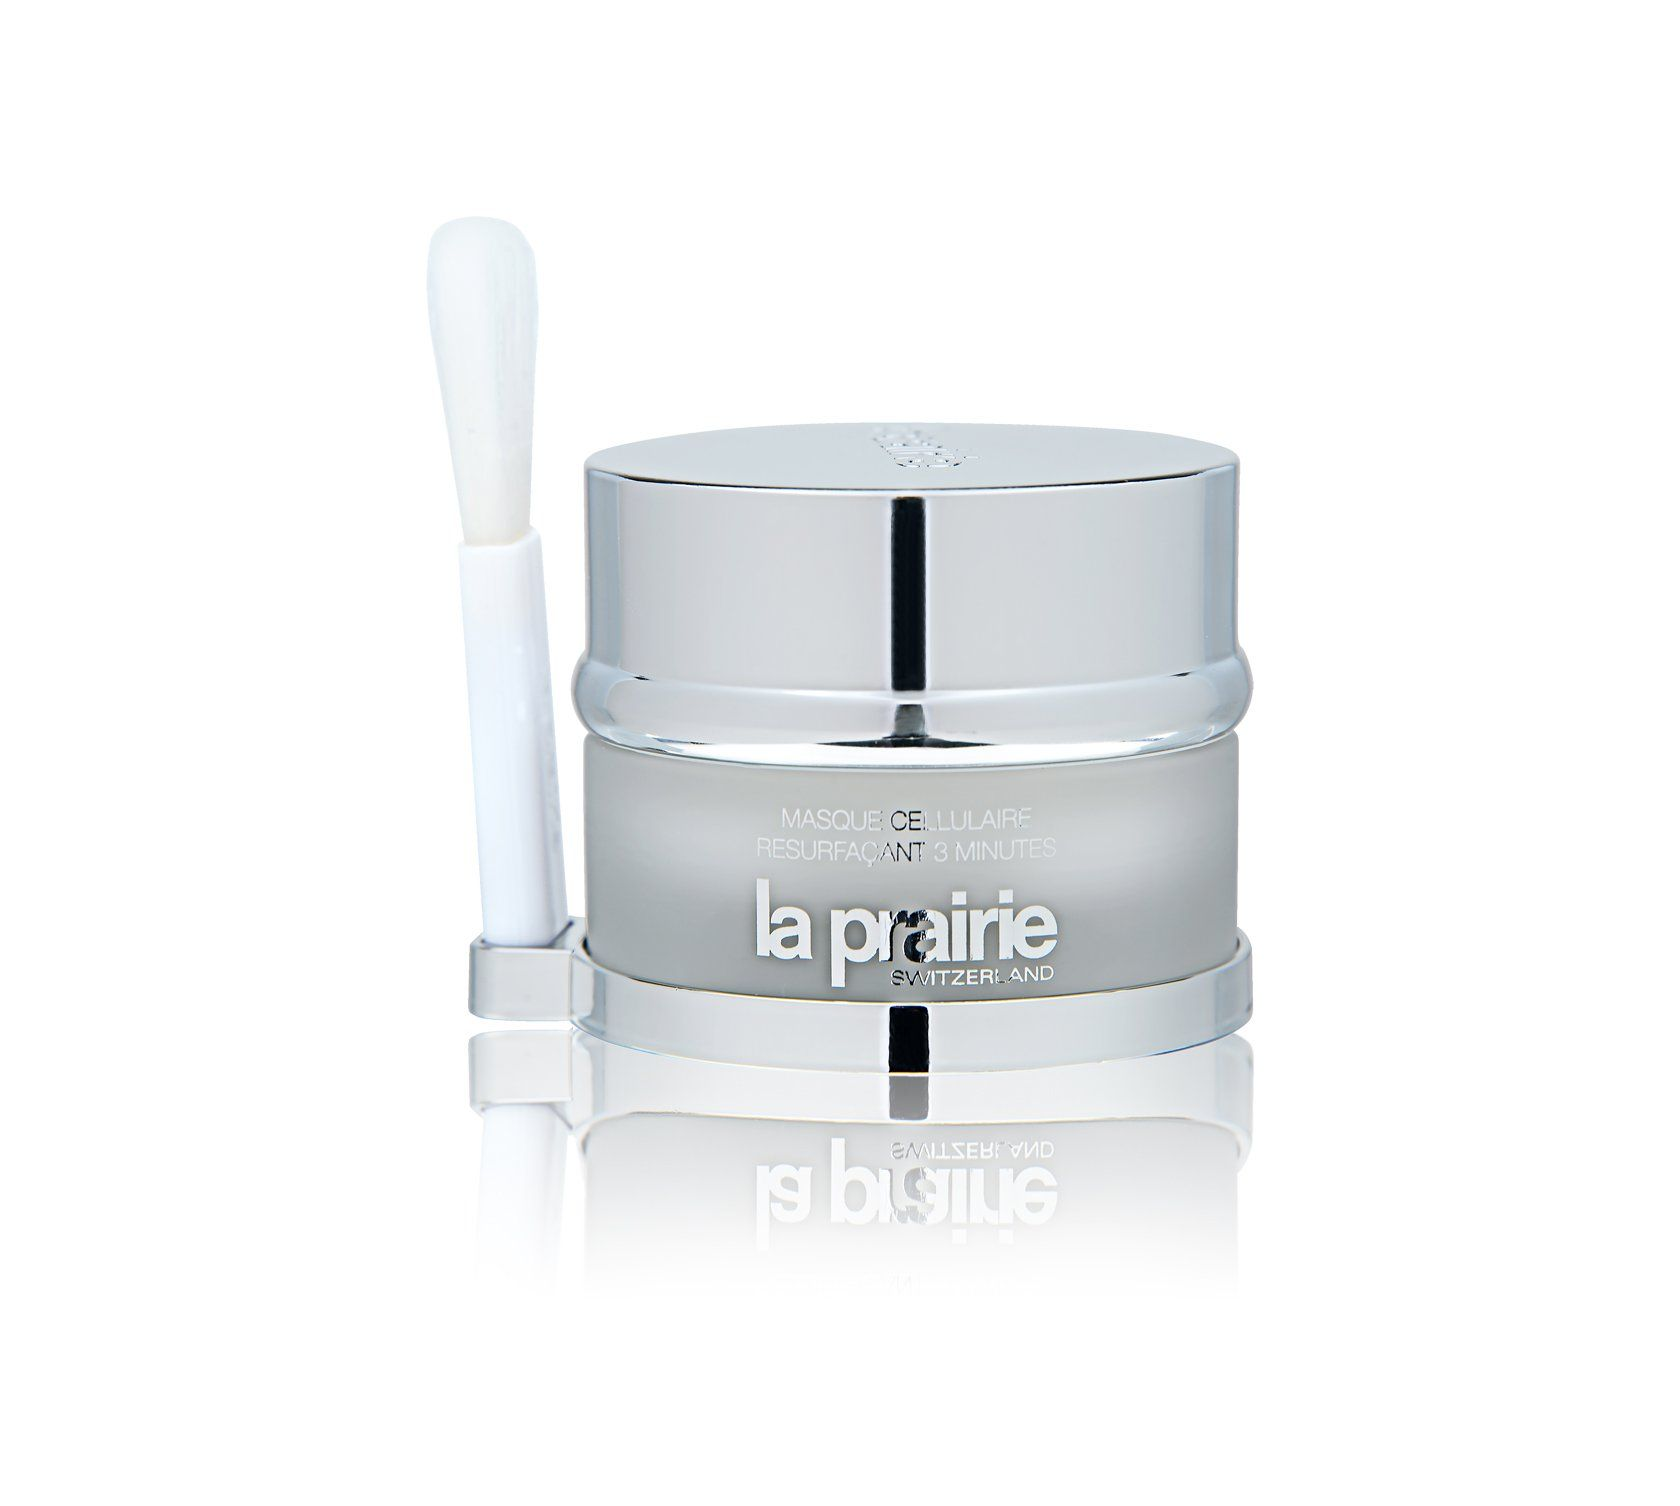 La Prairie Cellular 3 Minute Peel Akira Beauty International Cellular Beauty Marketing Mens Skin Care